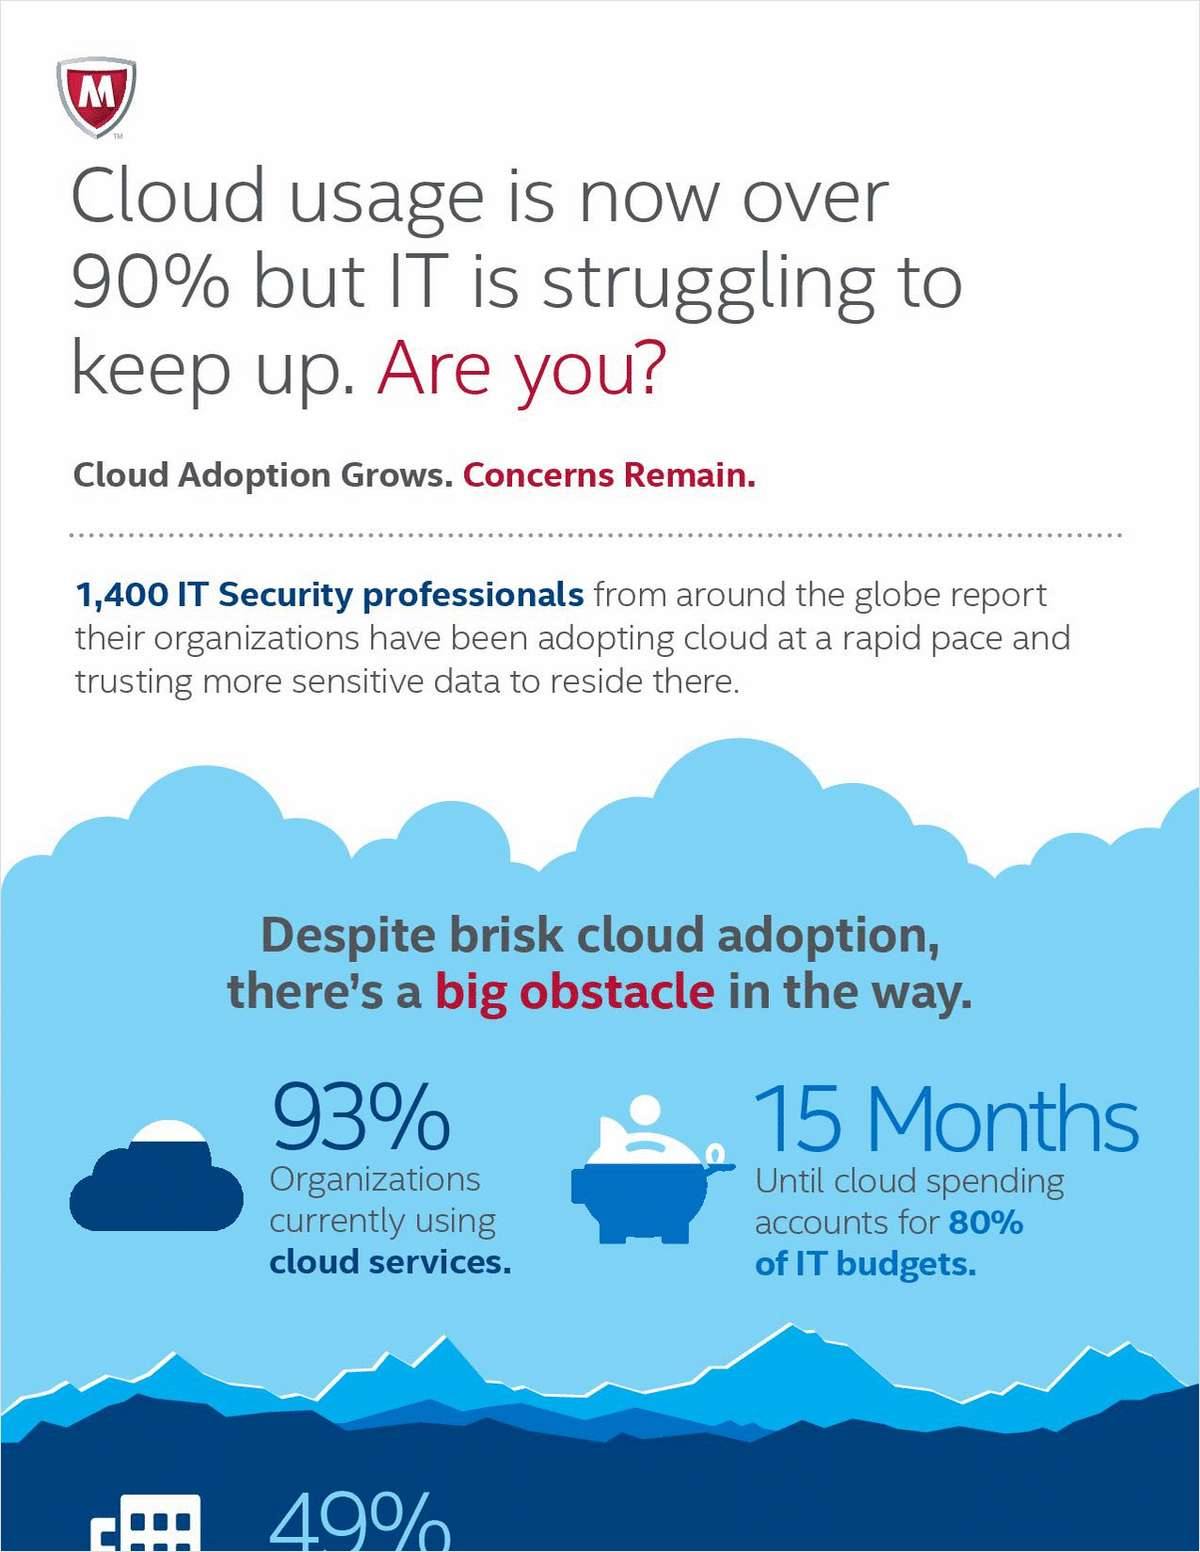 Cloud usage is now over 90% but IT is struggling to keep up. Are you?